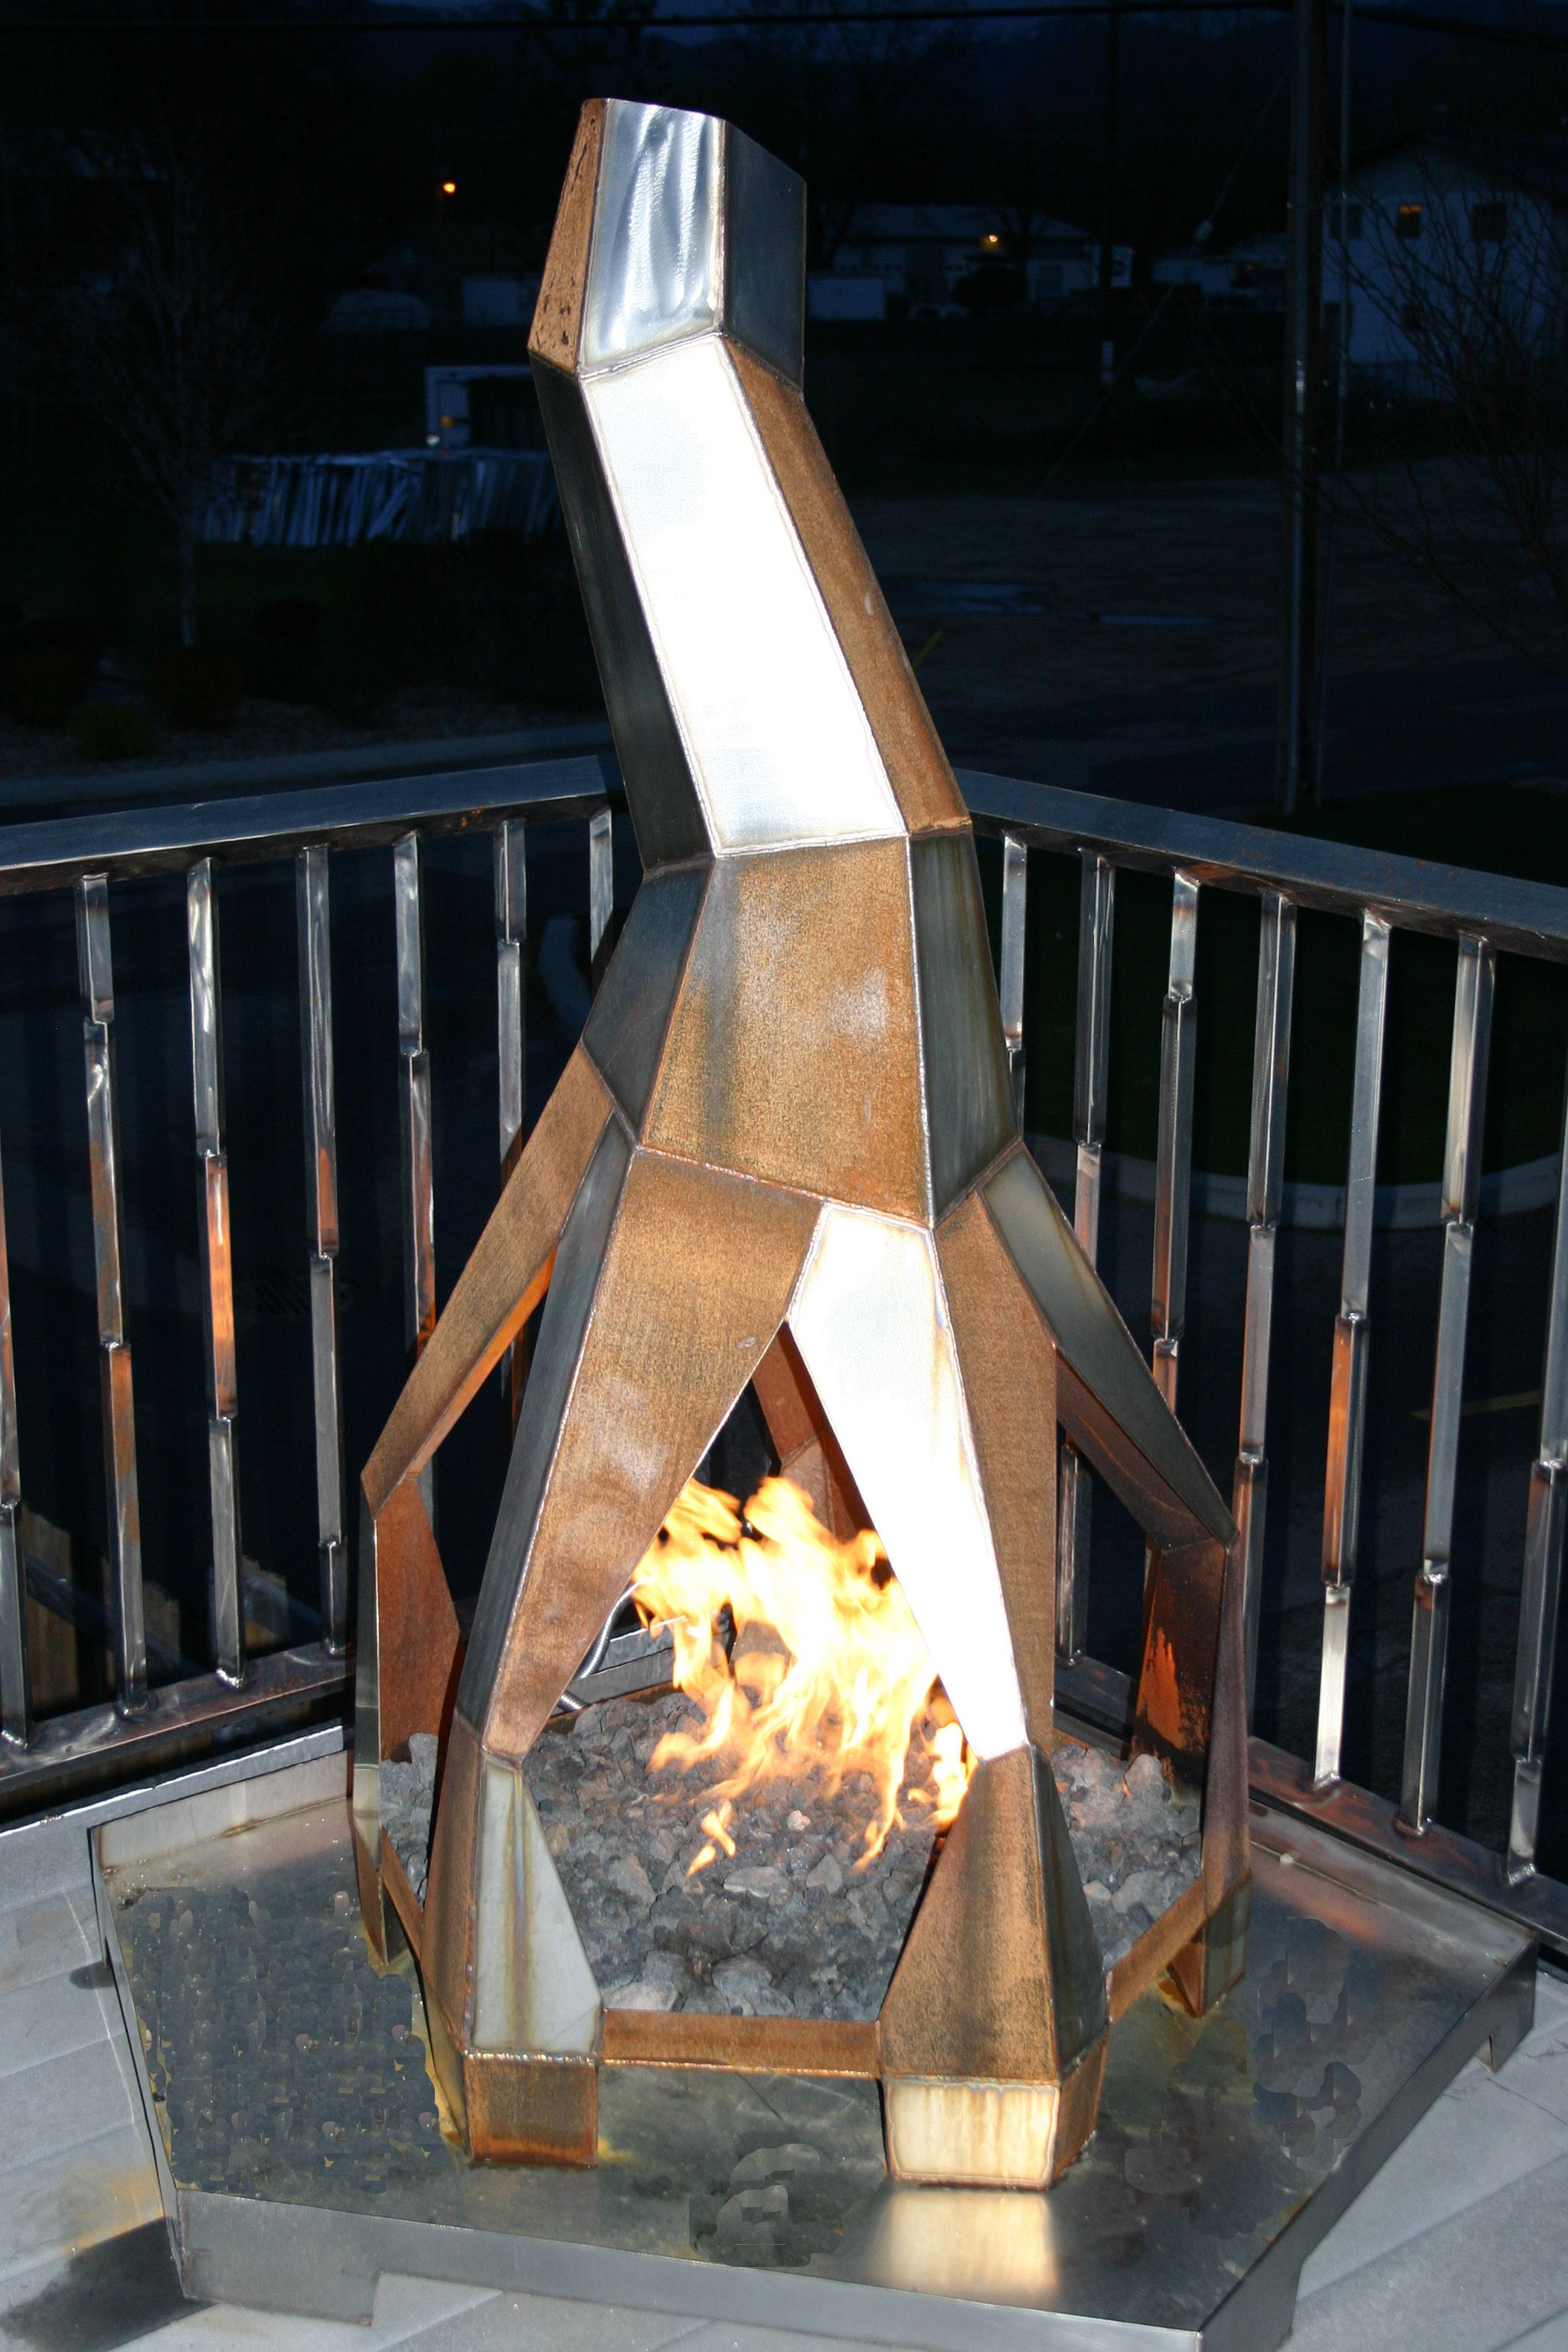 9570a73472f3f7f51a44c36c758d8e35 Top Result 50 Lovely Outdoor Gas Fire Bowl